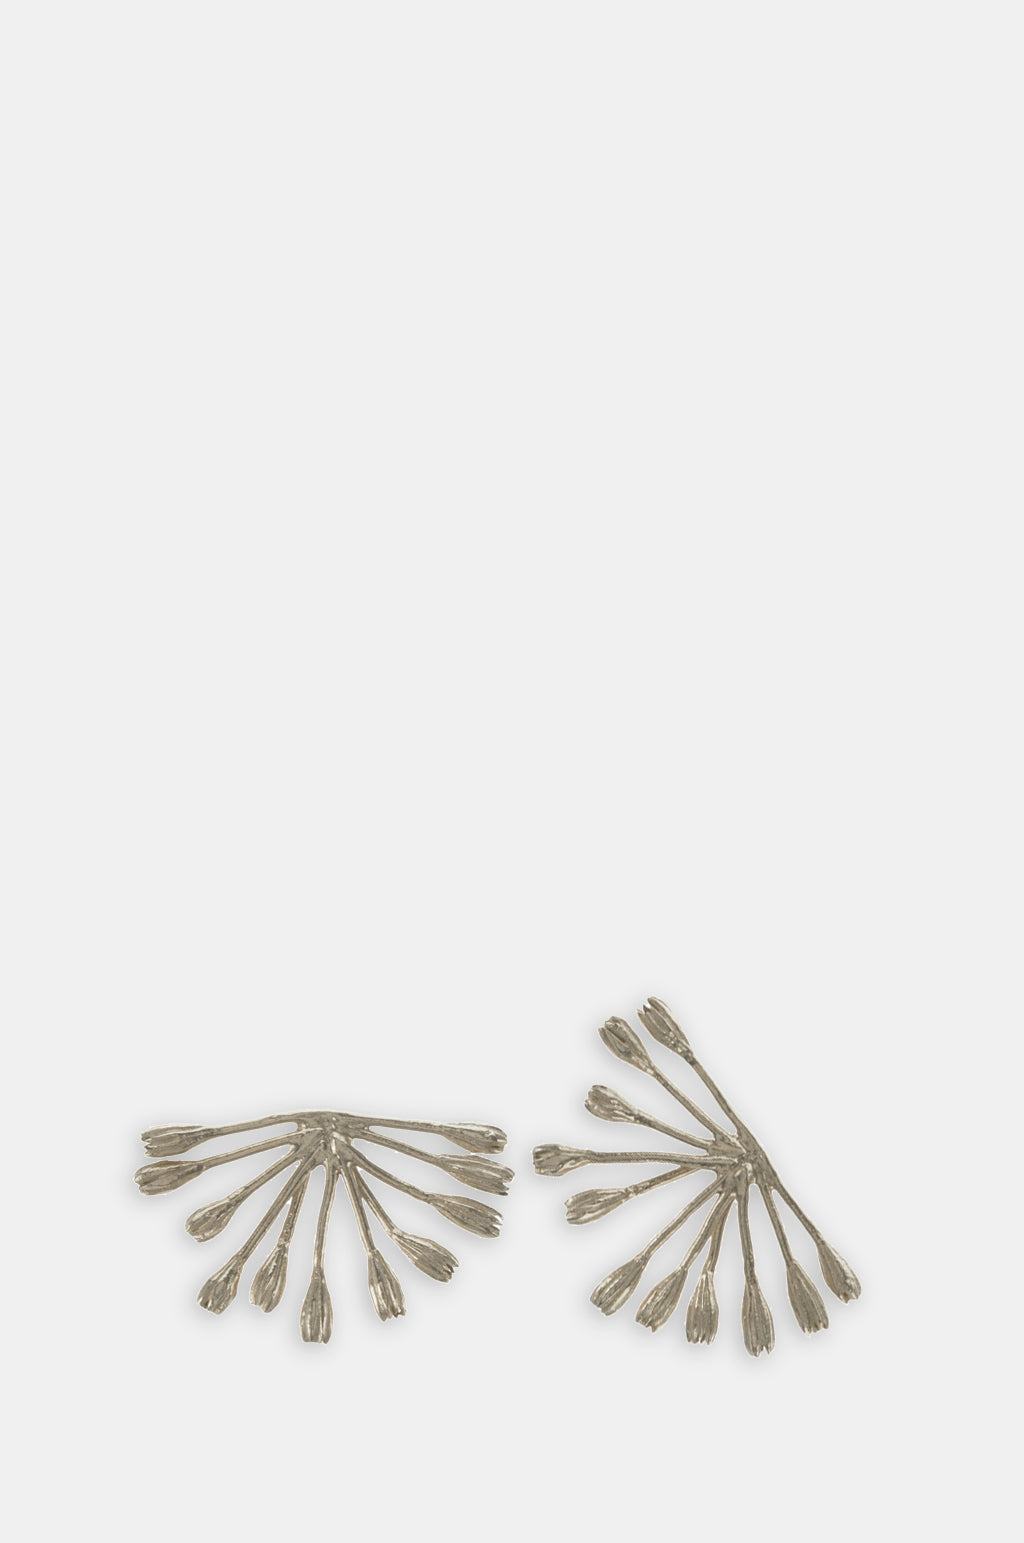 Fanned Seed Pod Stud Earrings Silver